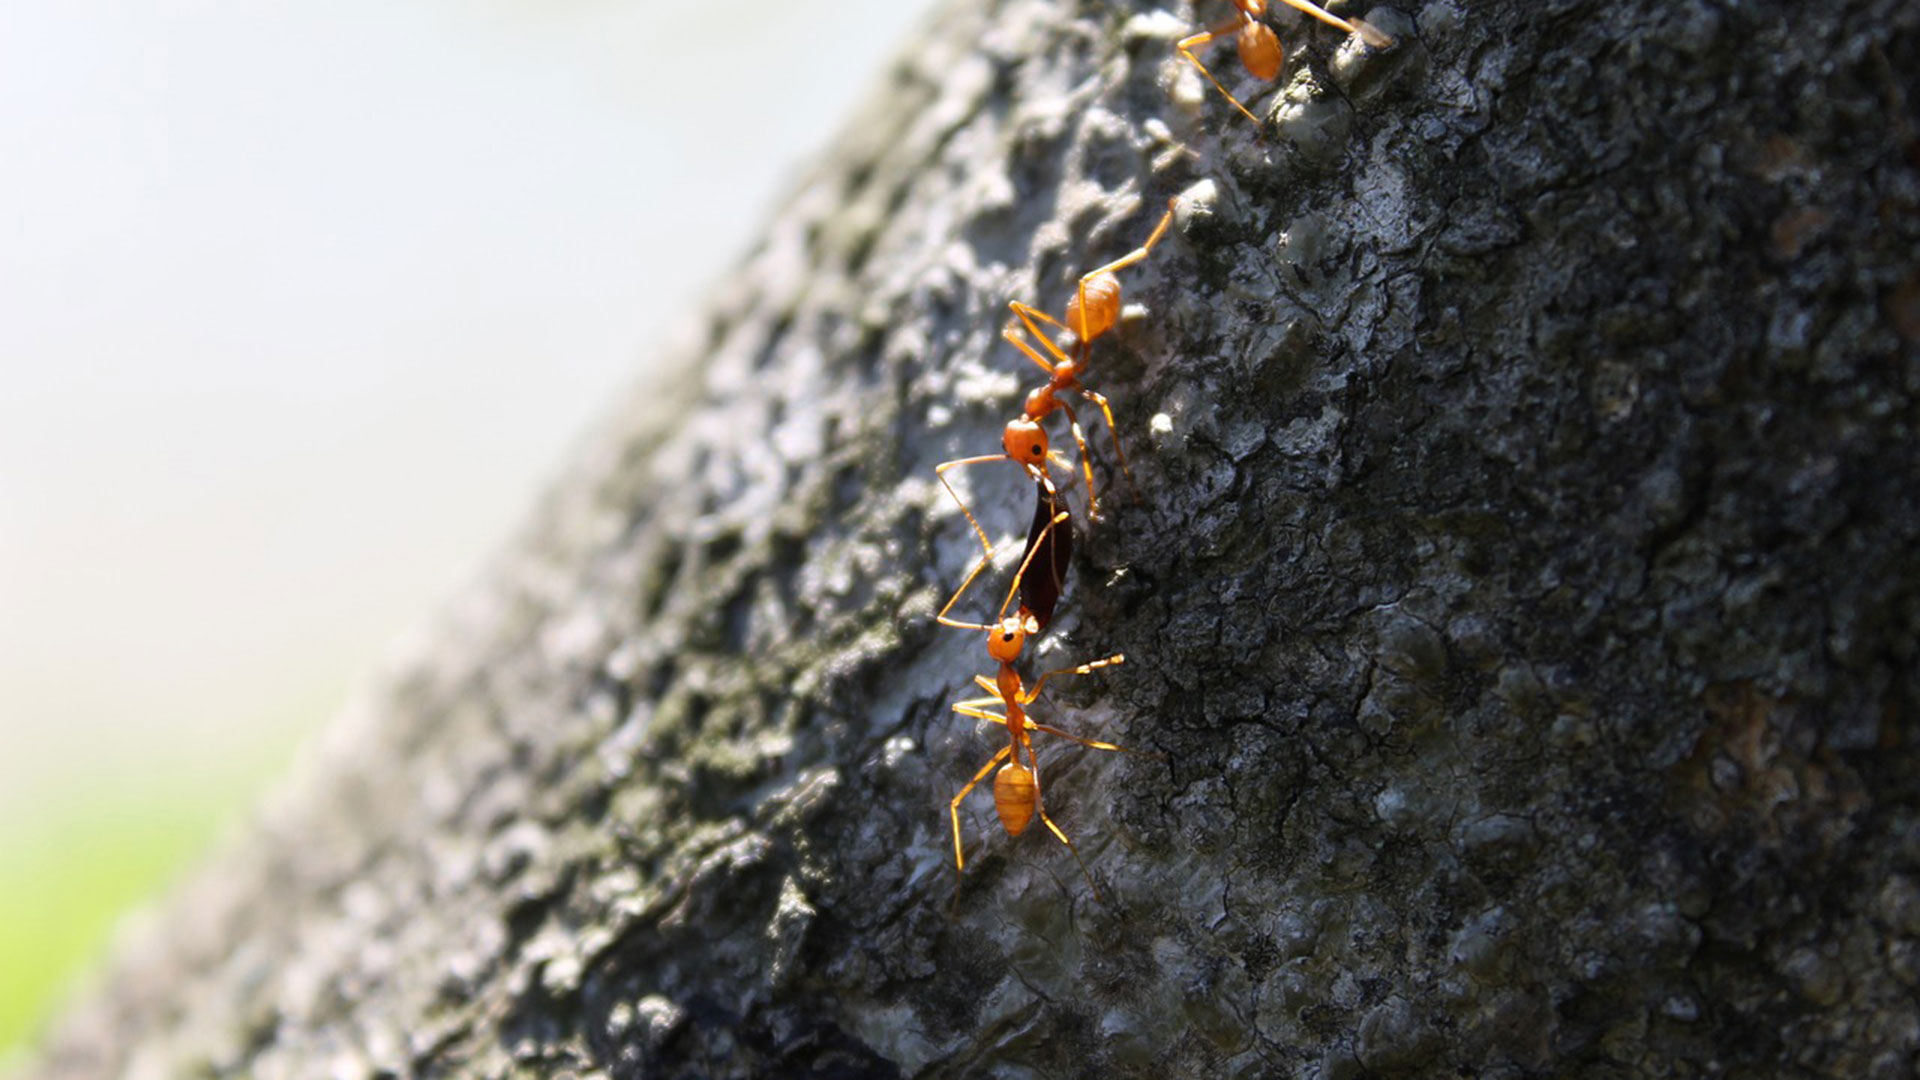 Researchers view the collective behavior of ants to search for links to human behavior.